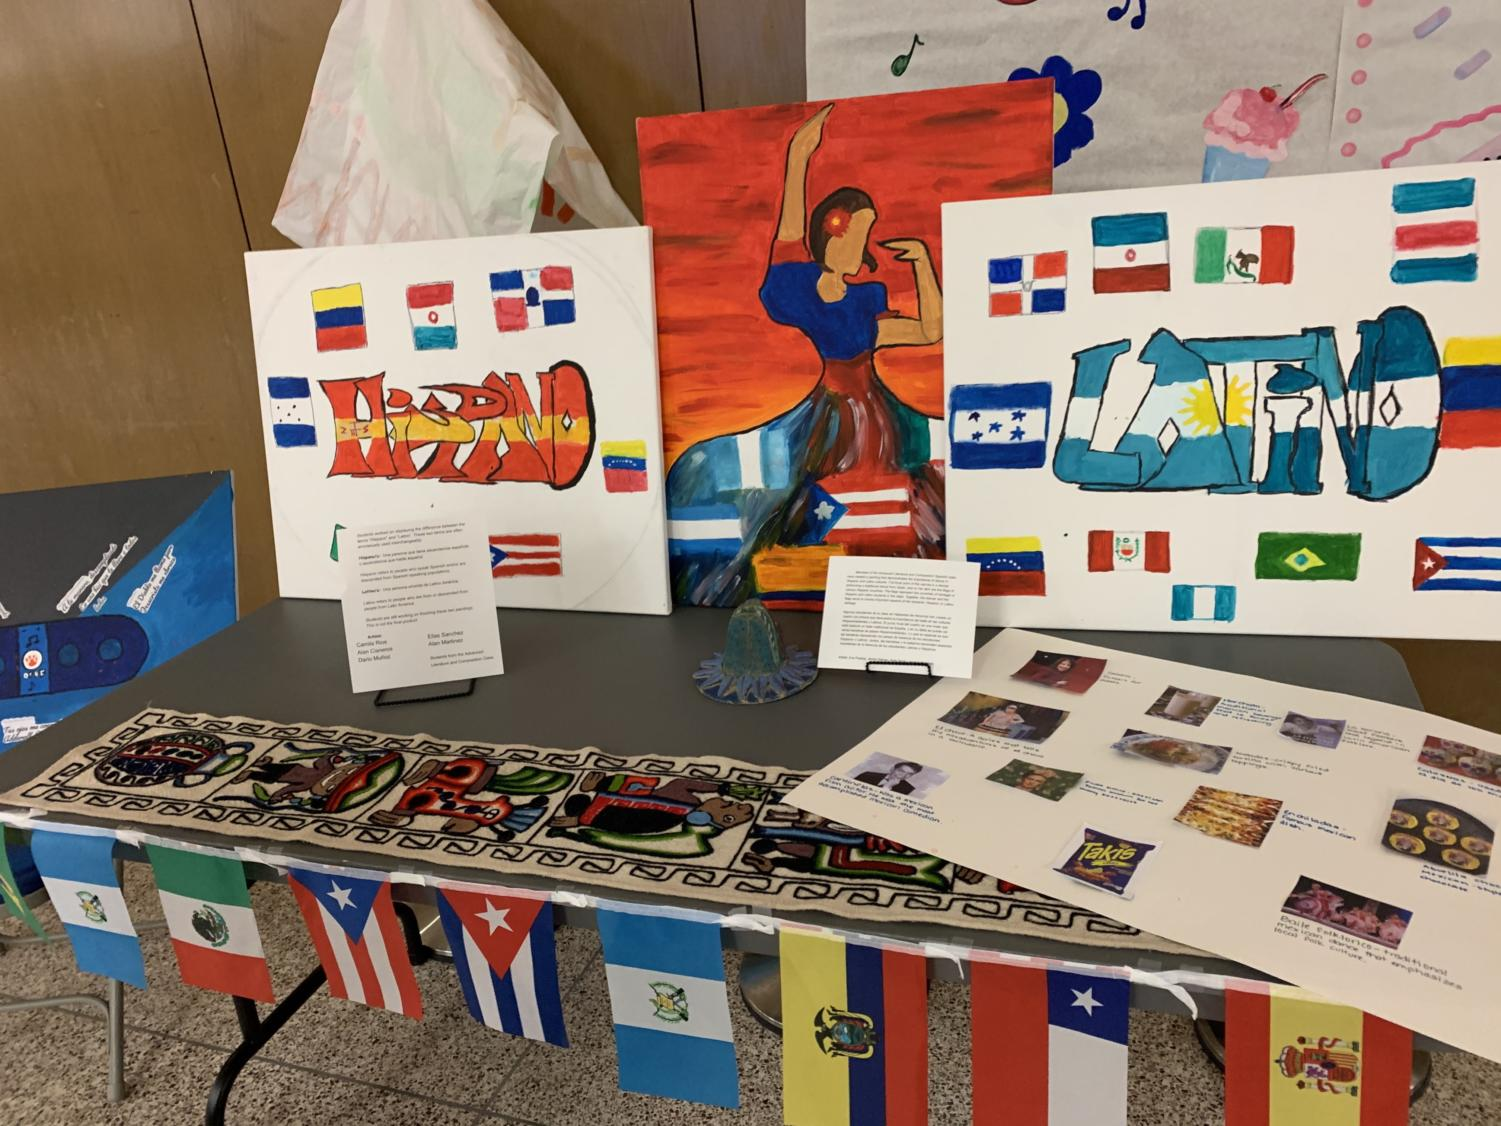 Stand at the Hispanic Heritage Month event